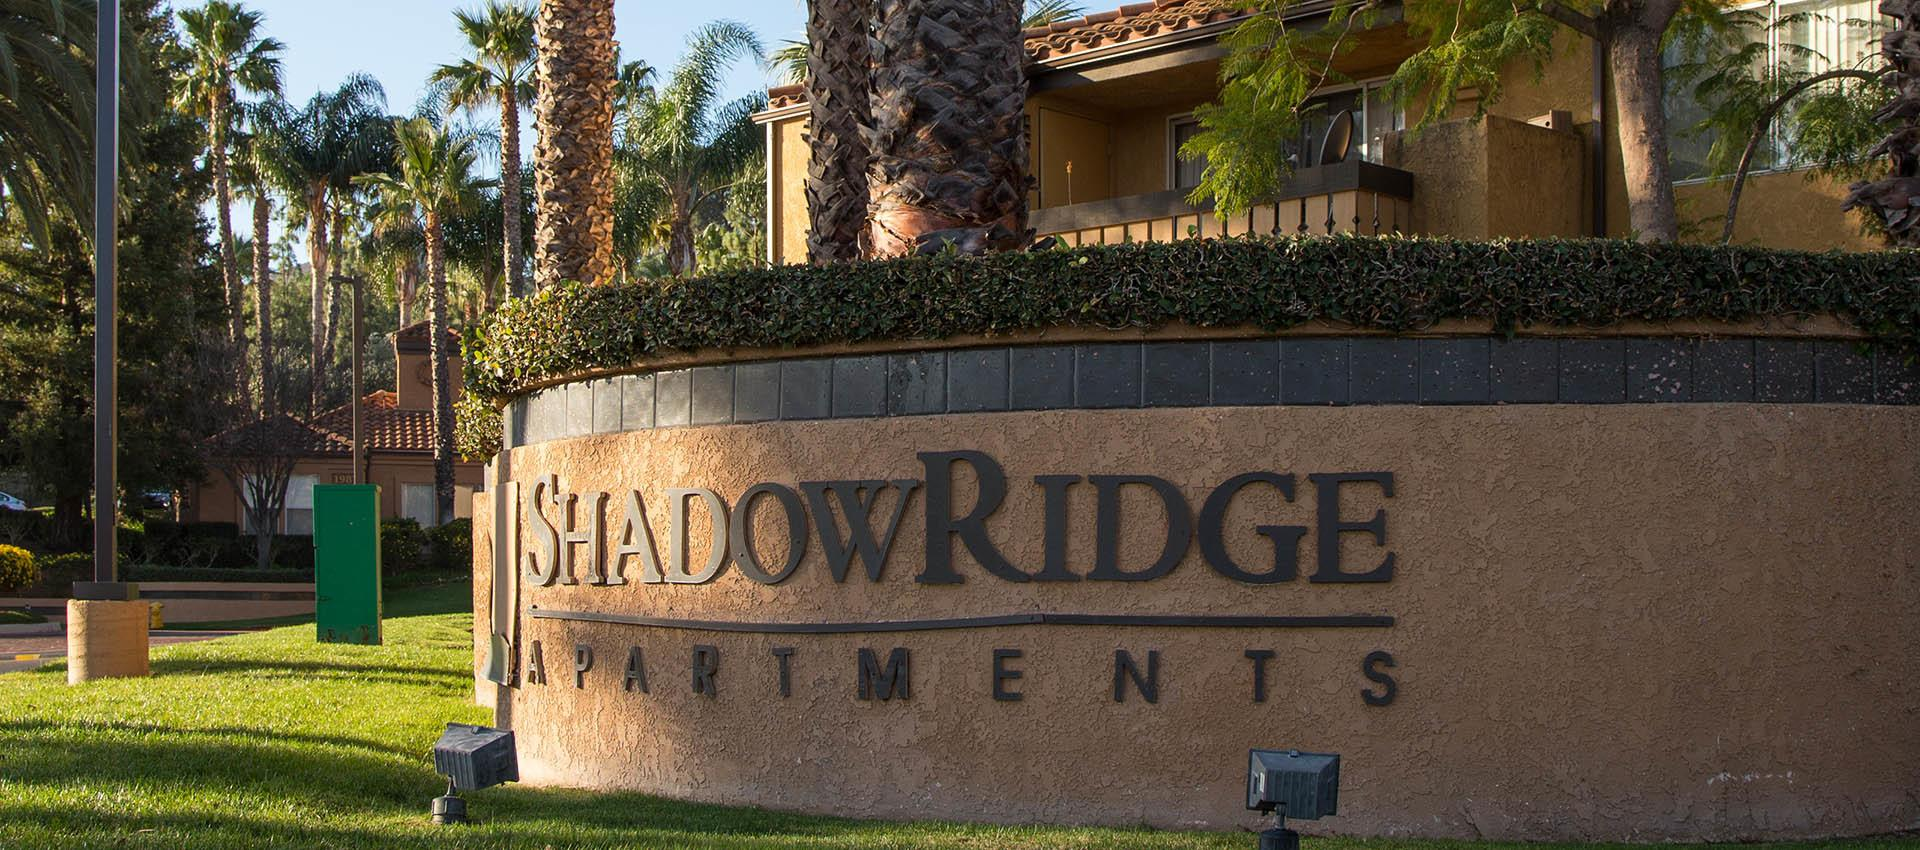 Signage at Shadow Ridge Apartment Homes in Simi Valley, CA